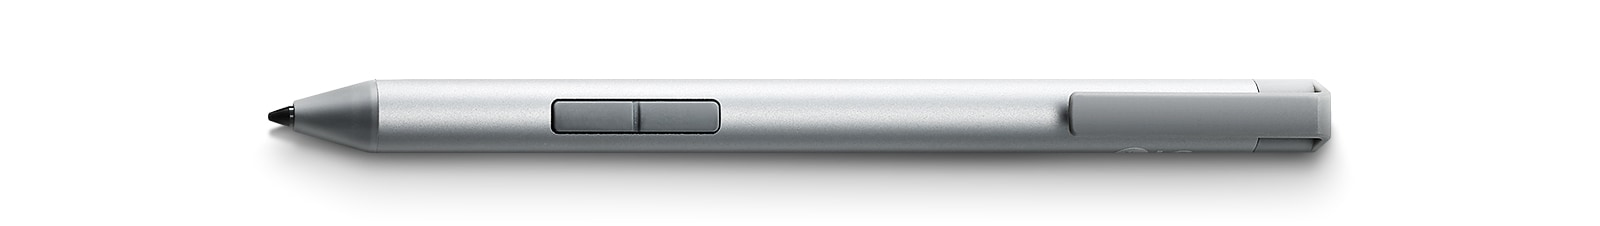 Image of the Stylus Pen